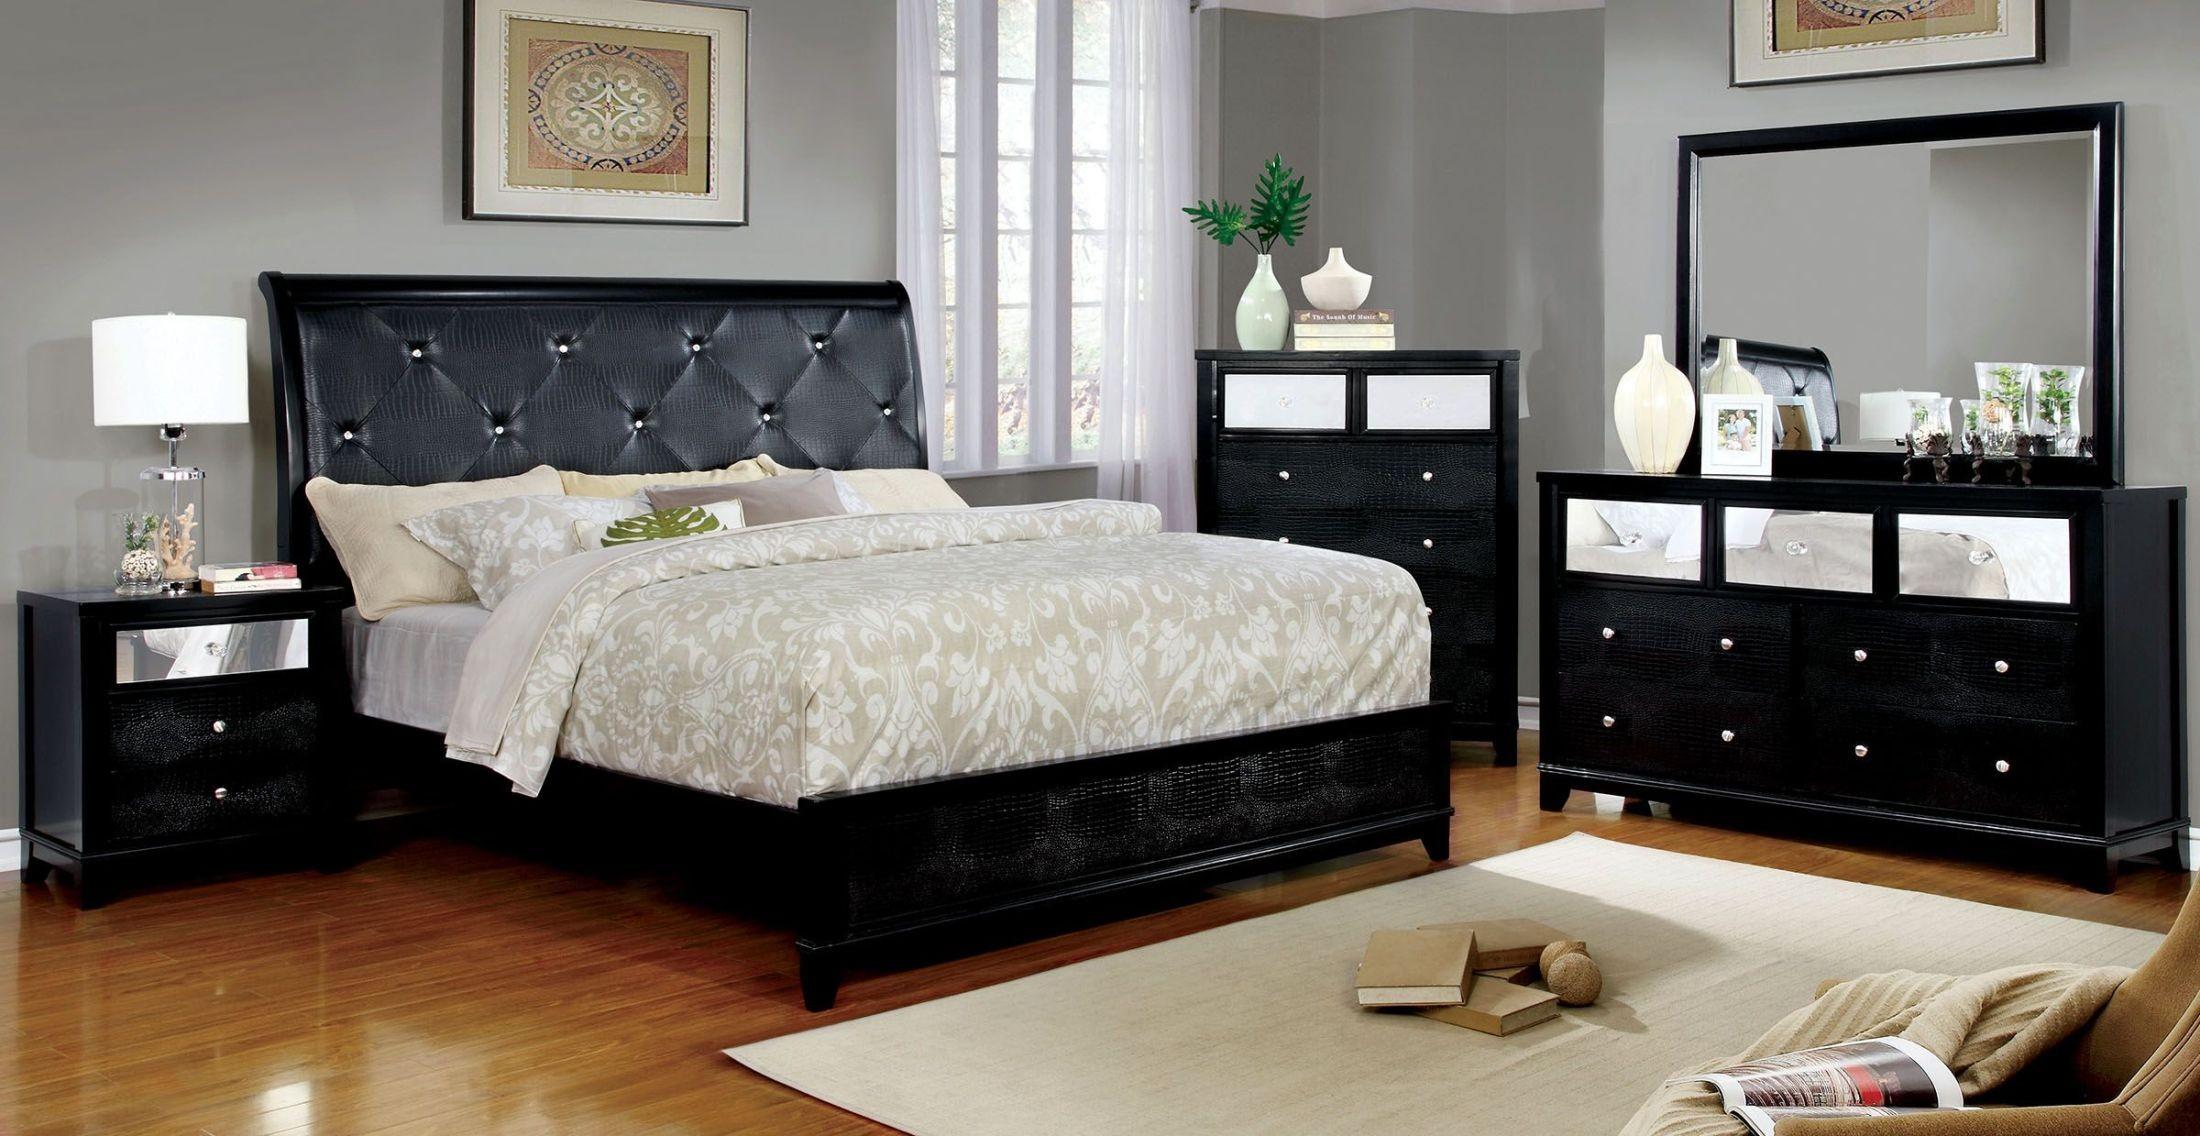 Bryant II Black Dresser from Furniture of America